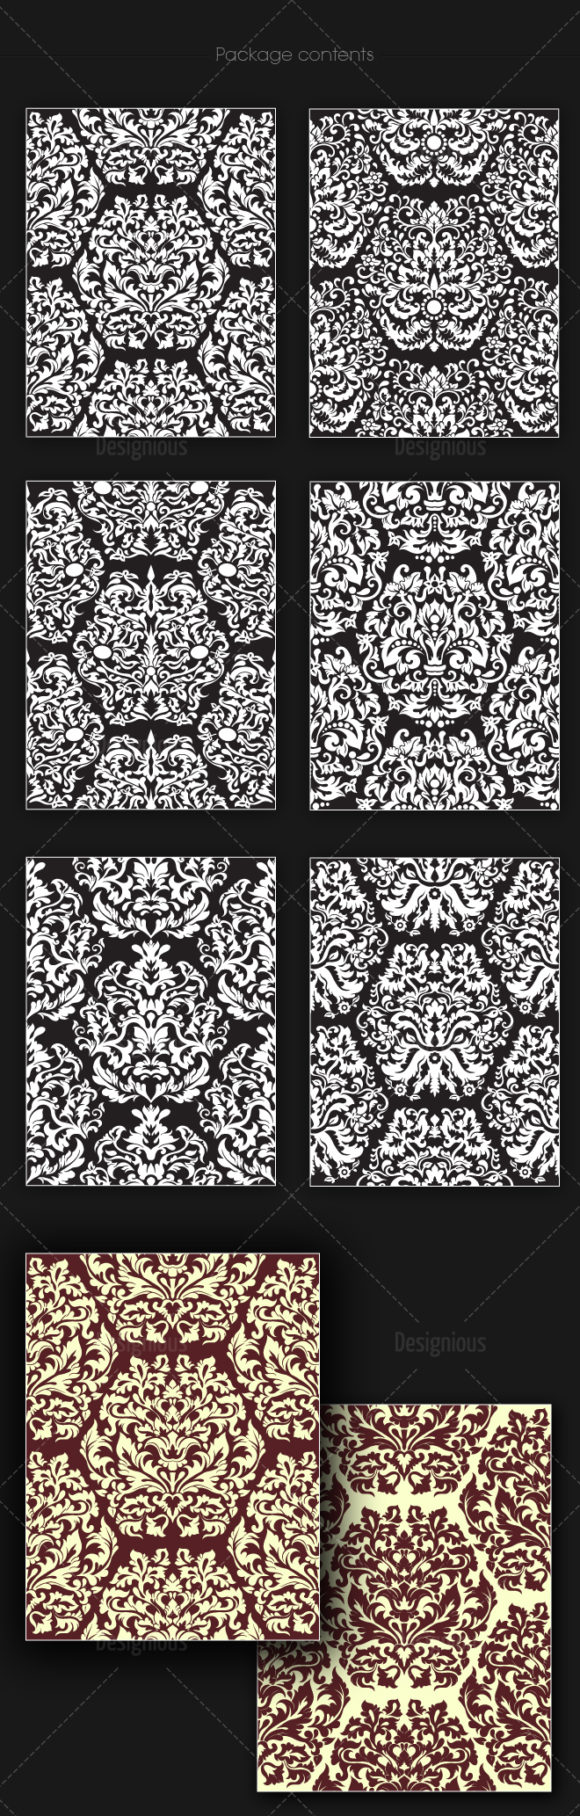 Seamless Patterns Vector Pack 150 6